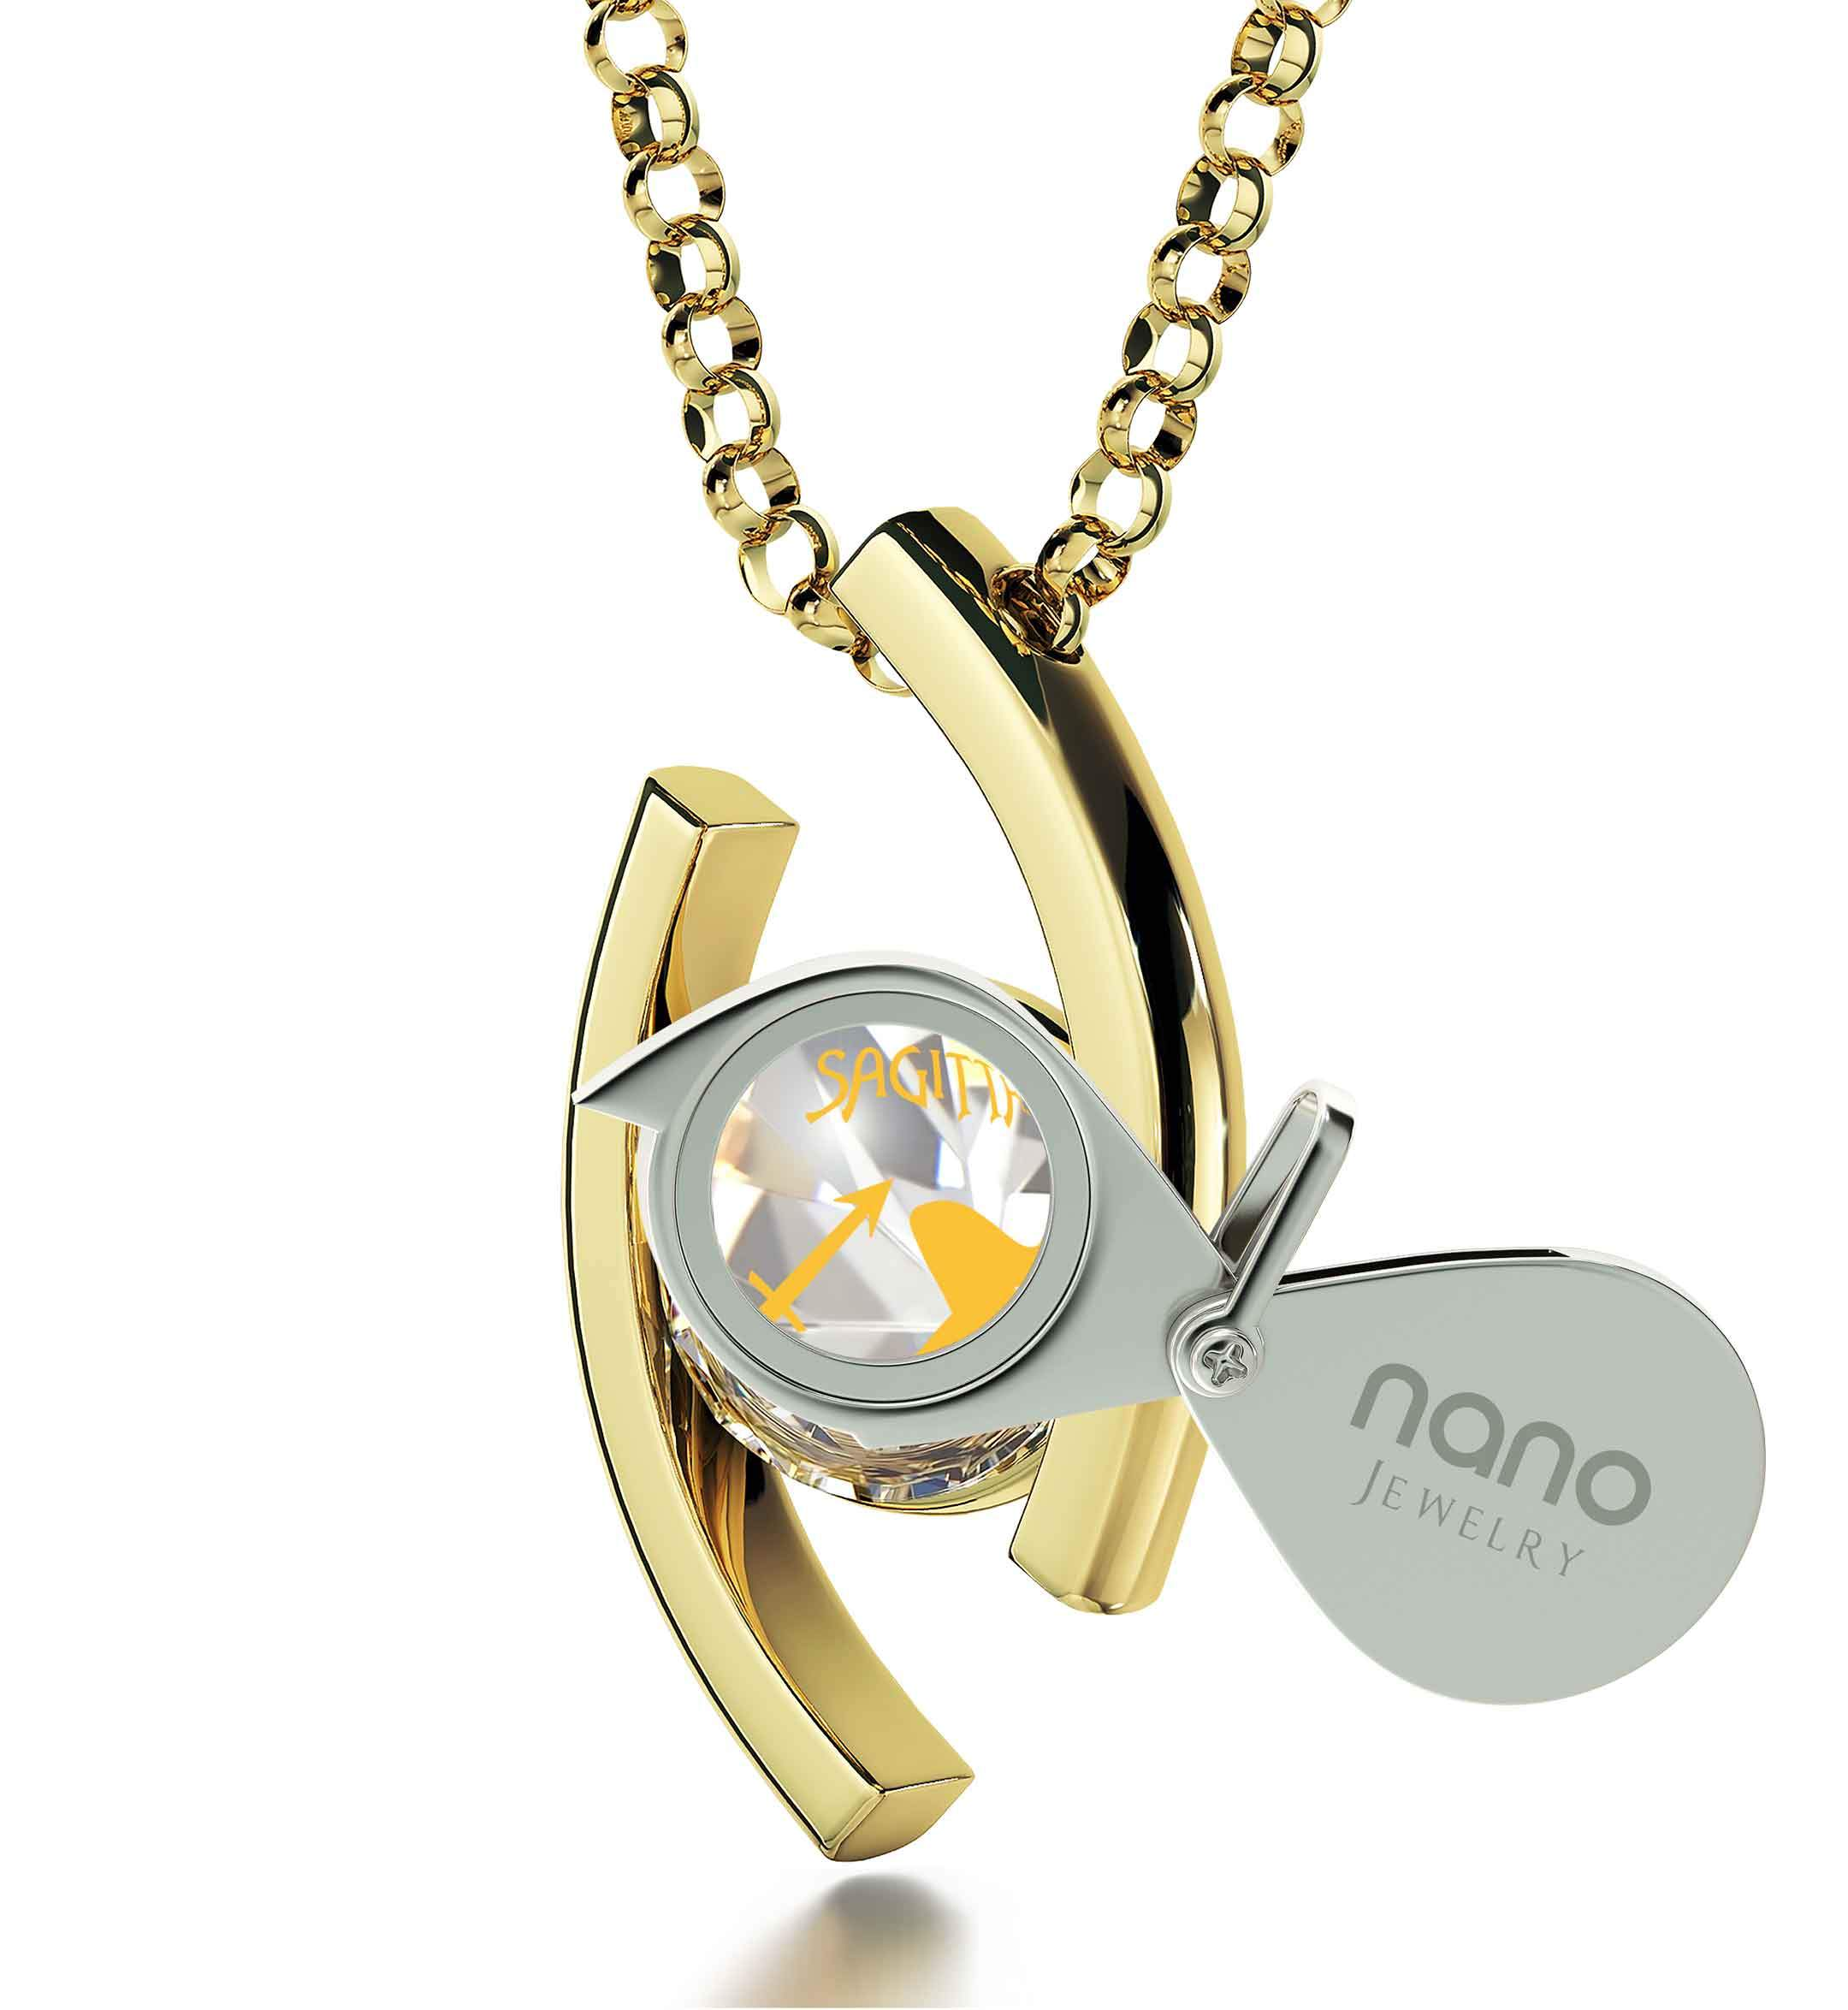 Sagittarius Jewelry With Zodiac Imprint, What to Buy My Girlfriend for Christmas, Valentine Necklace for Her, by Nano